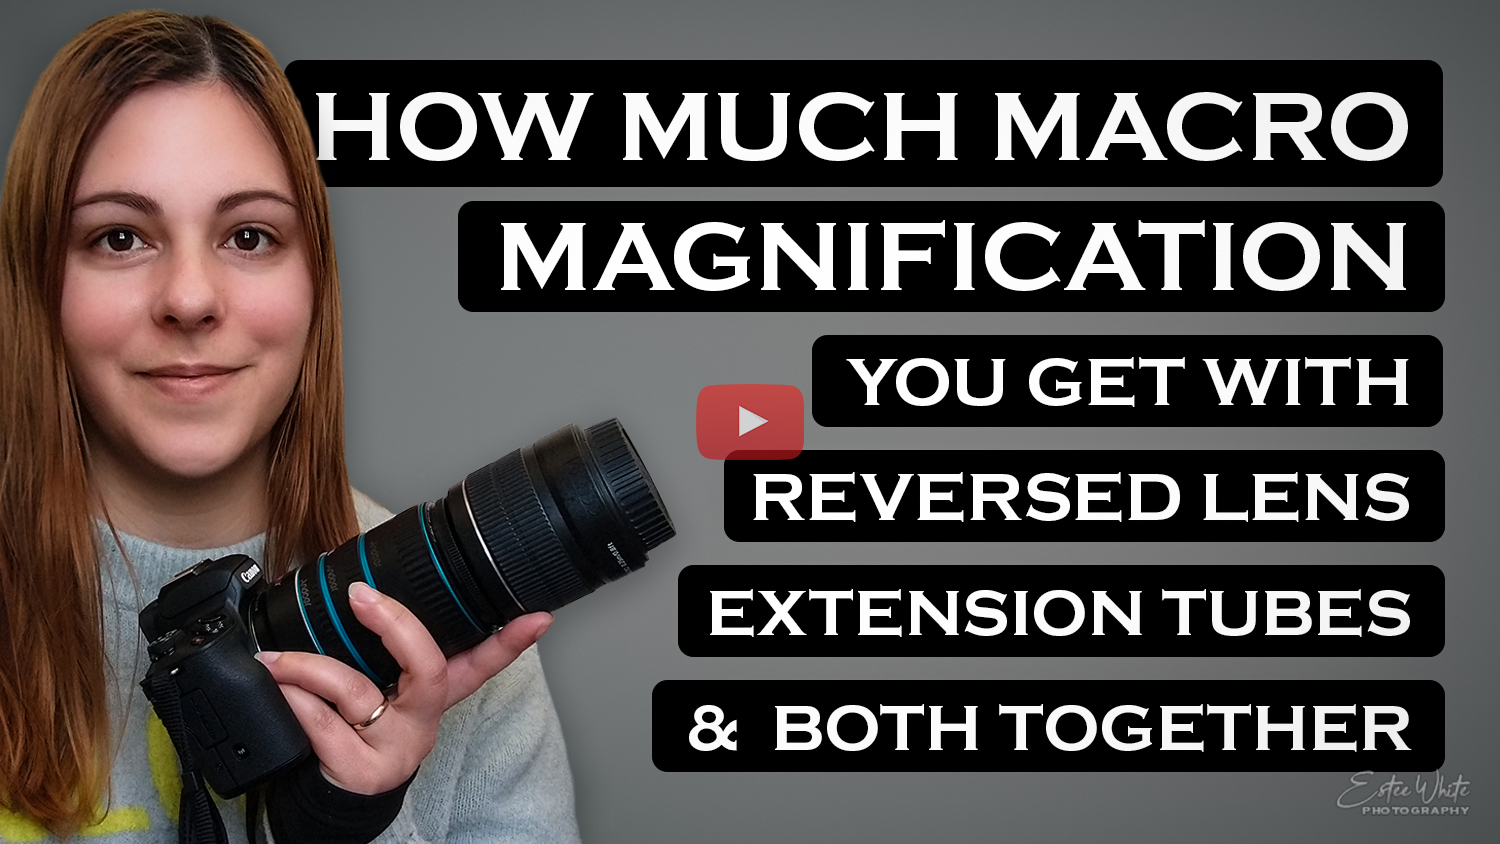 how much macro magnification reverse lens extension tube